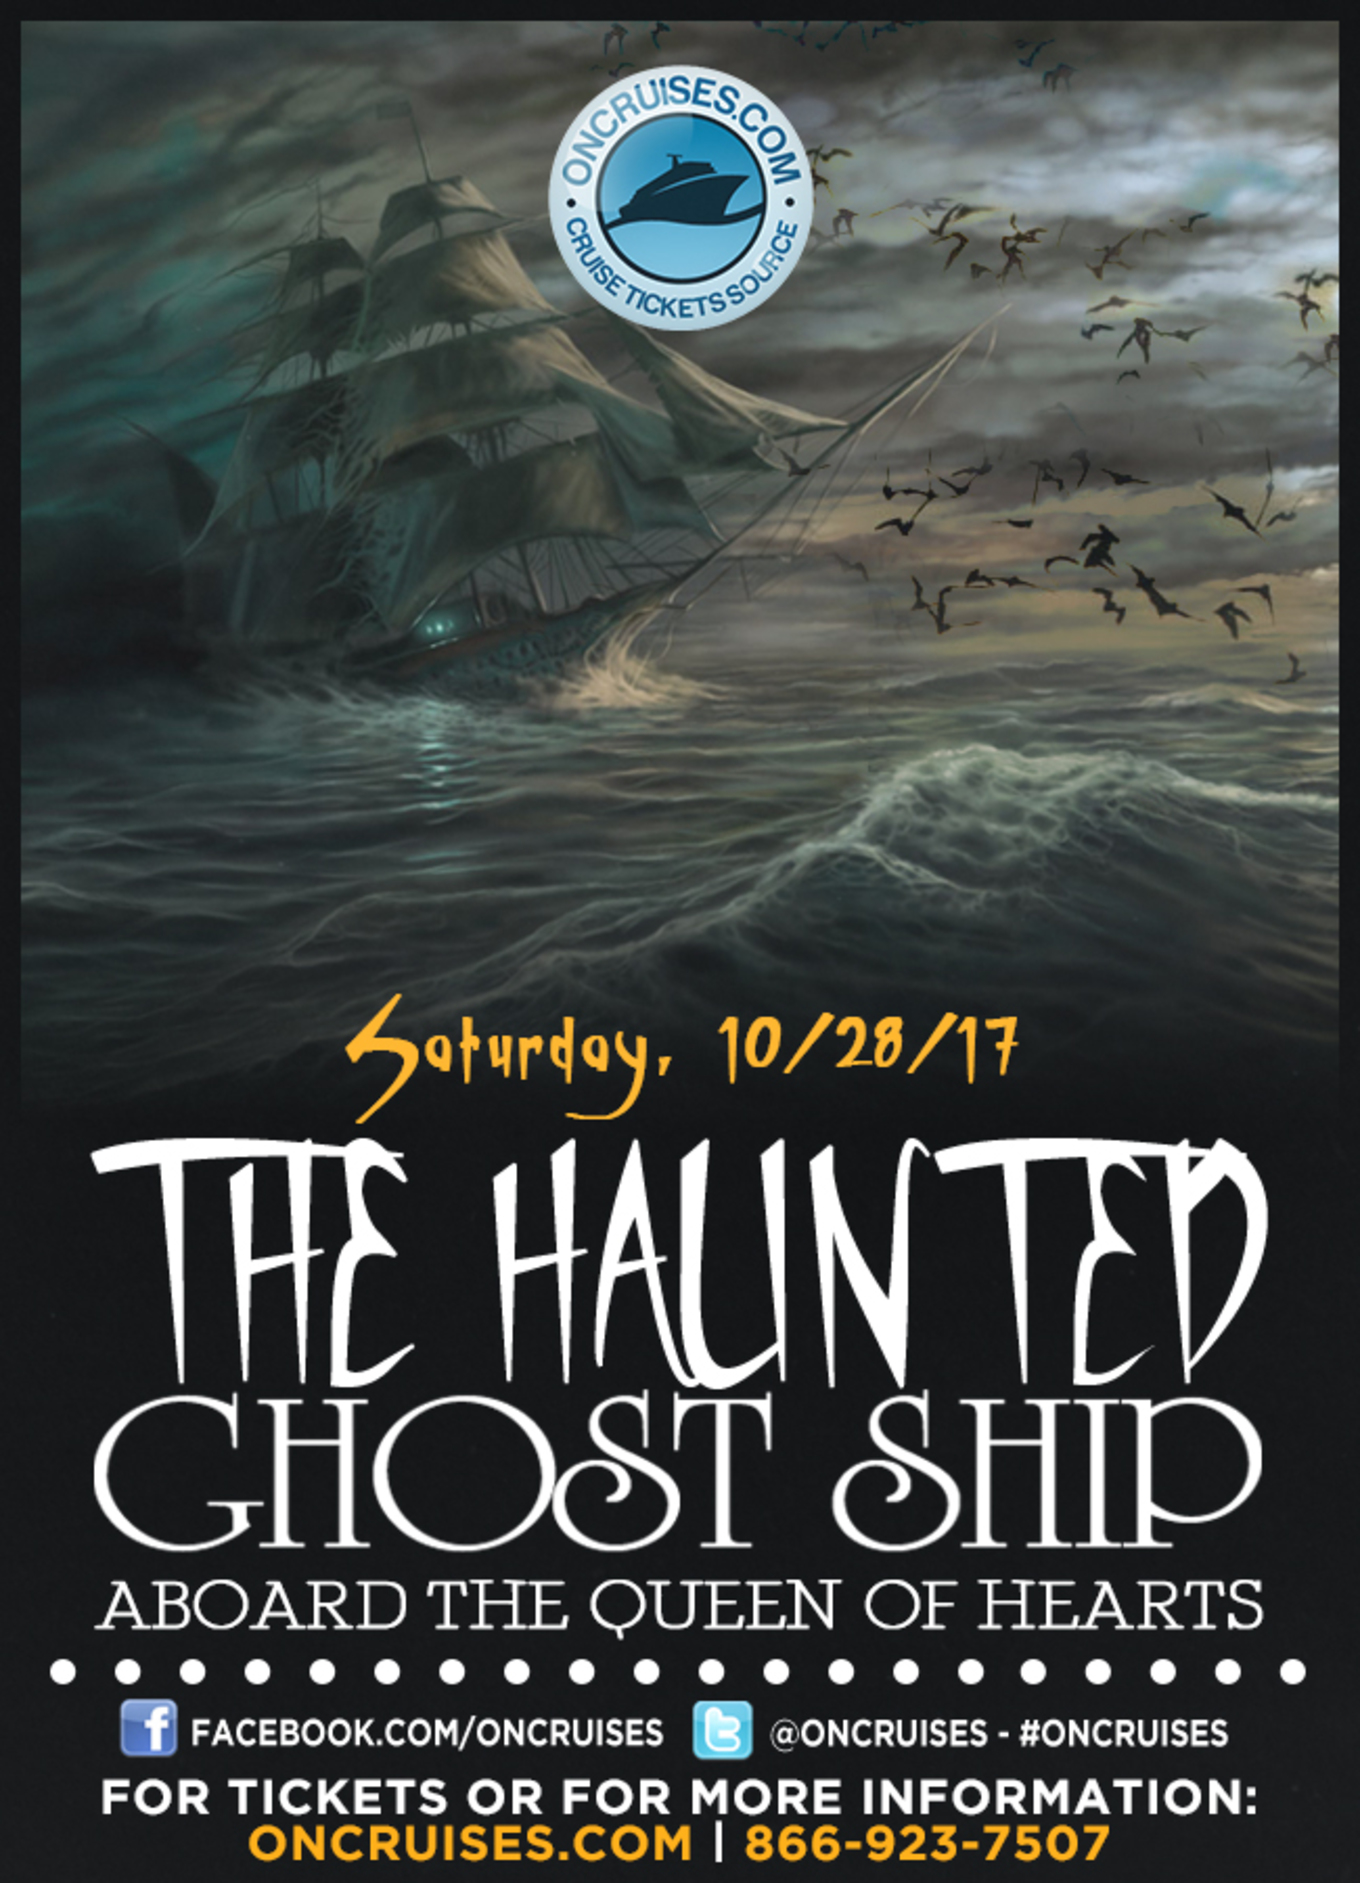 The Haunted Ghost Ship Midnight Party Cruise Aboard the Queen of ...